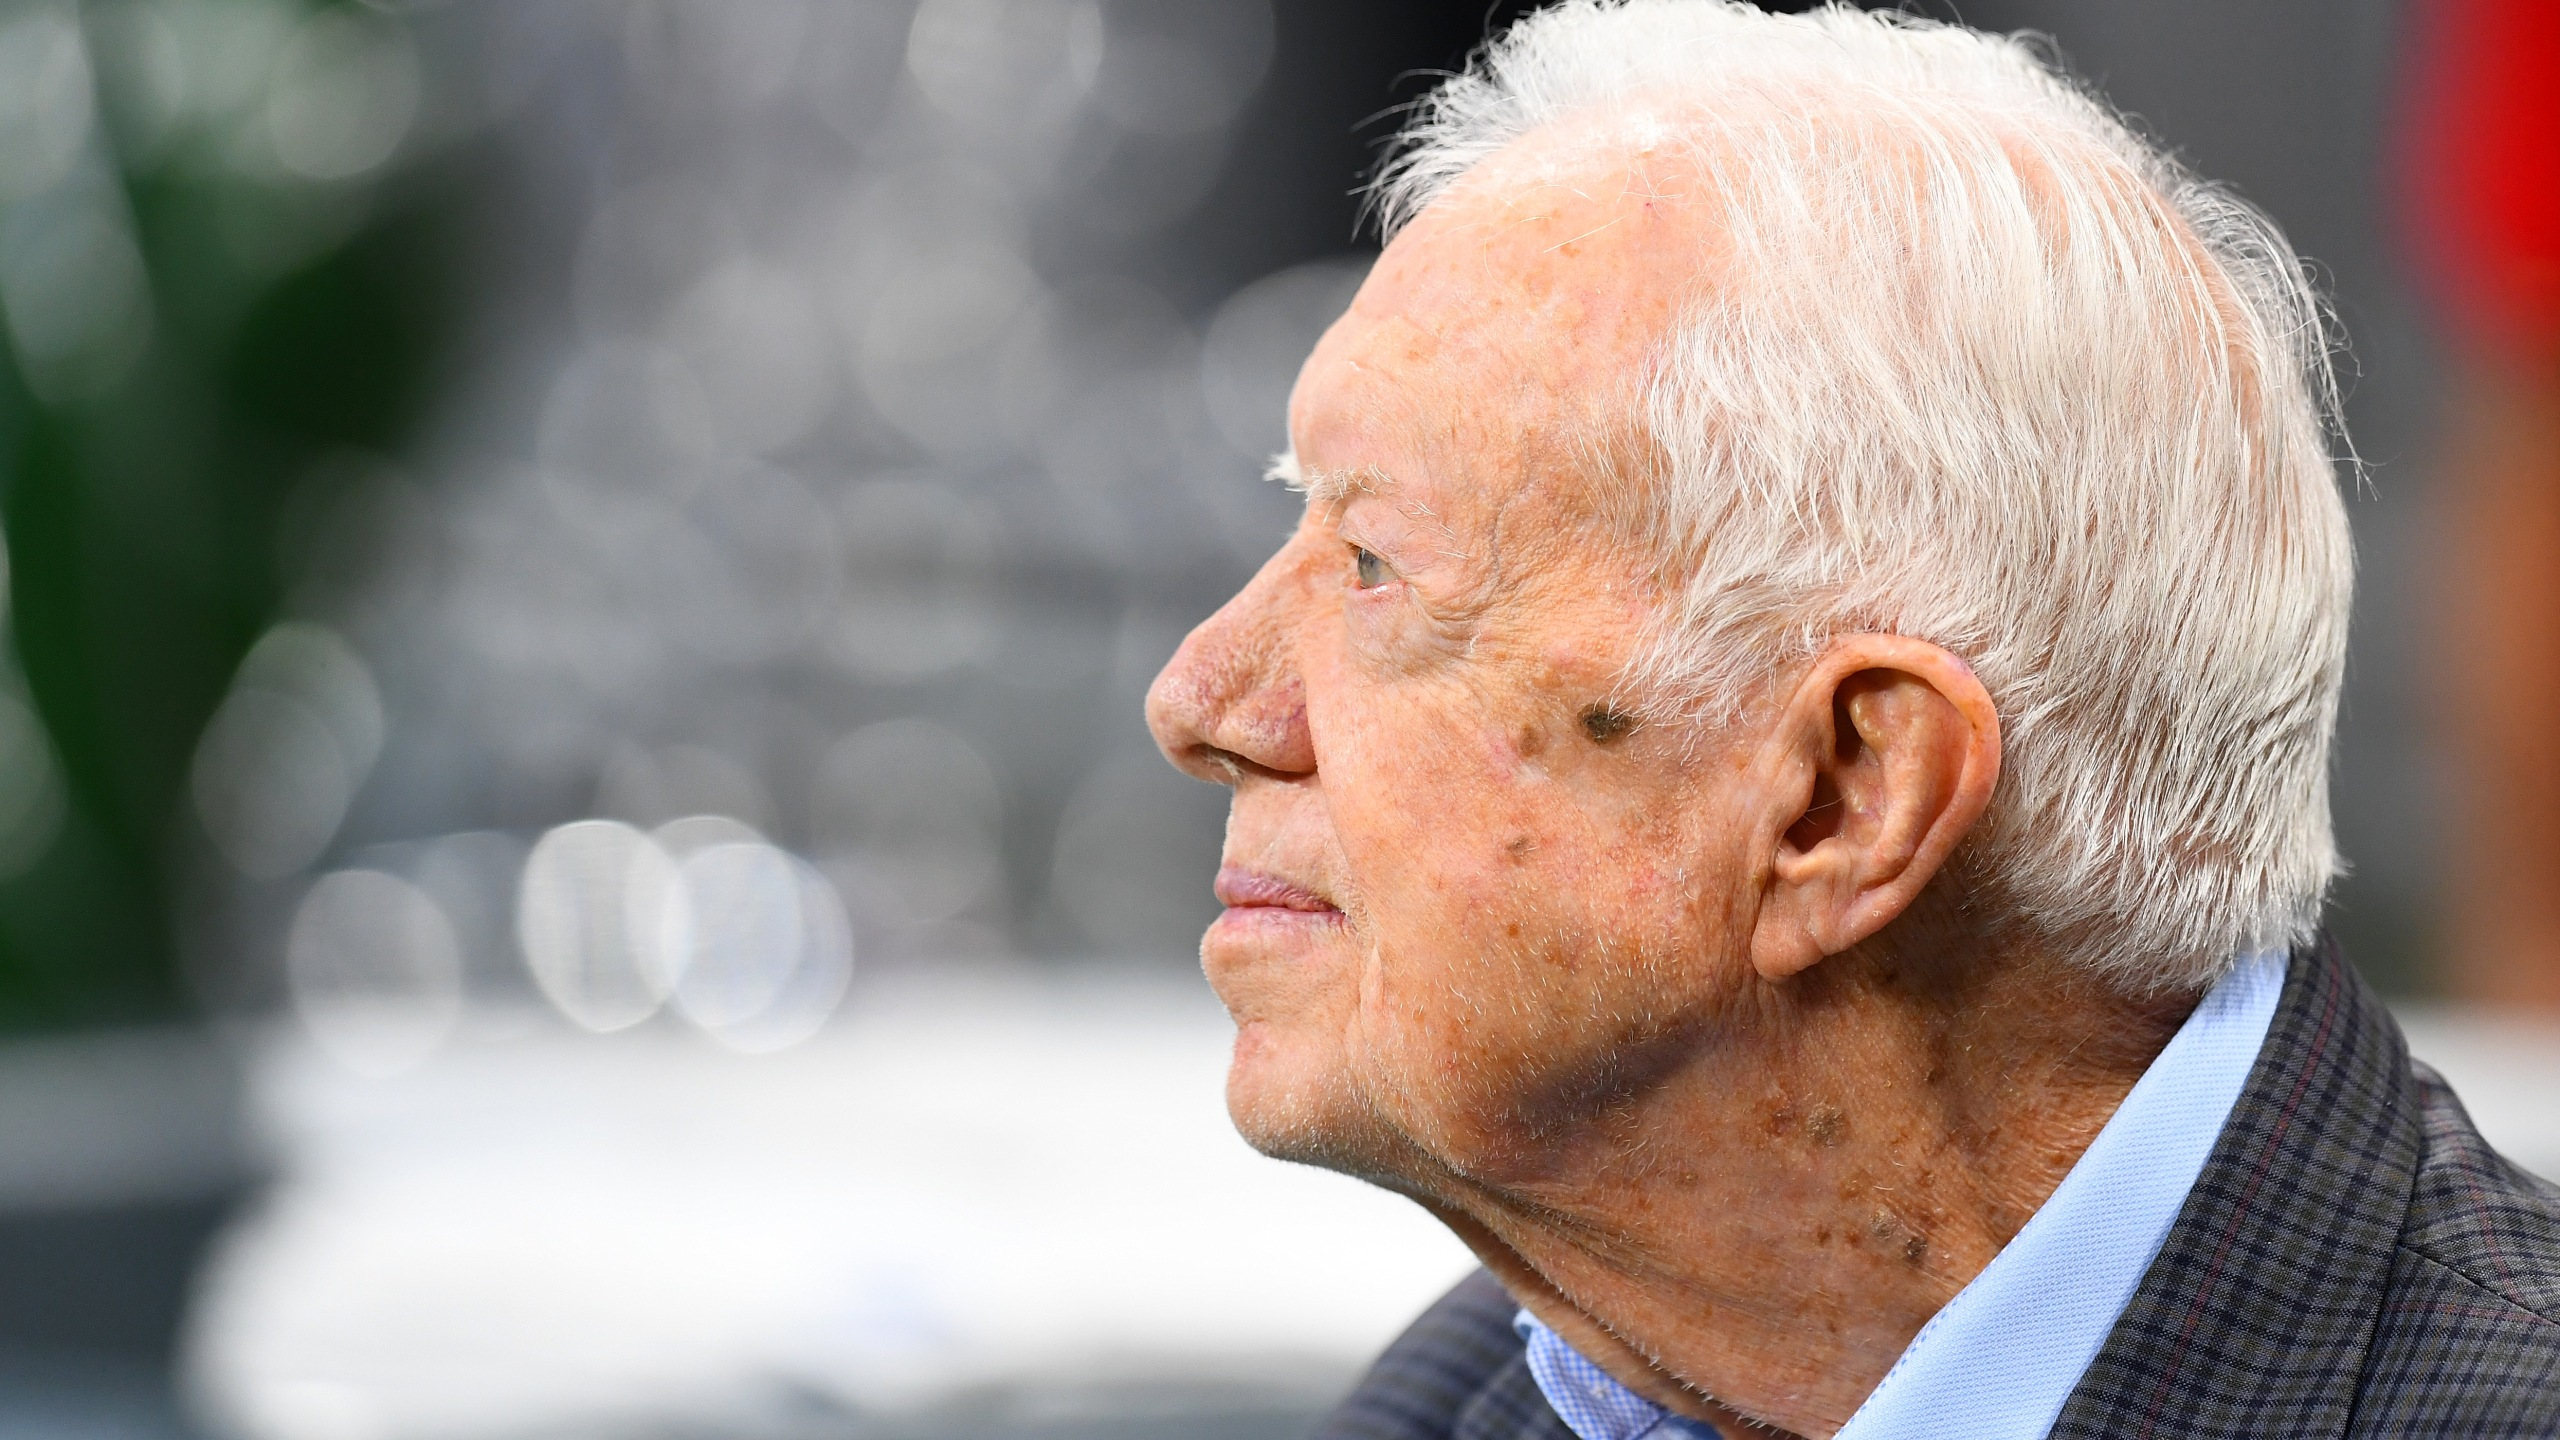 Jimmy Carter attends a game between the Atlanta Falcons and the Cincinnati Bengals at Mercedes-Benz Stadium on Sept. 30, 2018 in Atlanta, Georgia. (Credit: Scott Cunningham/Getty Images)